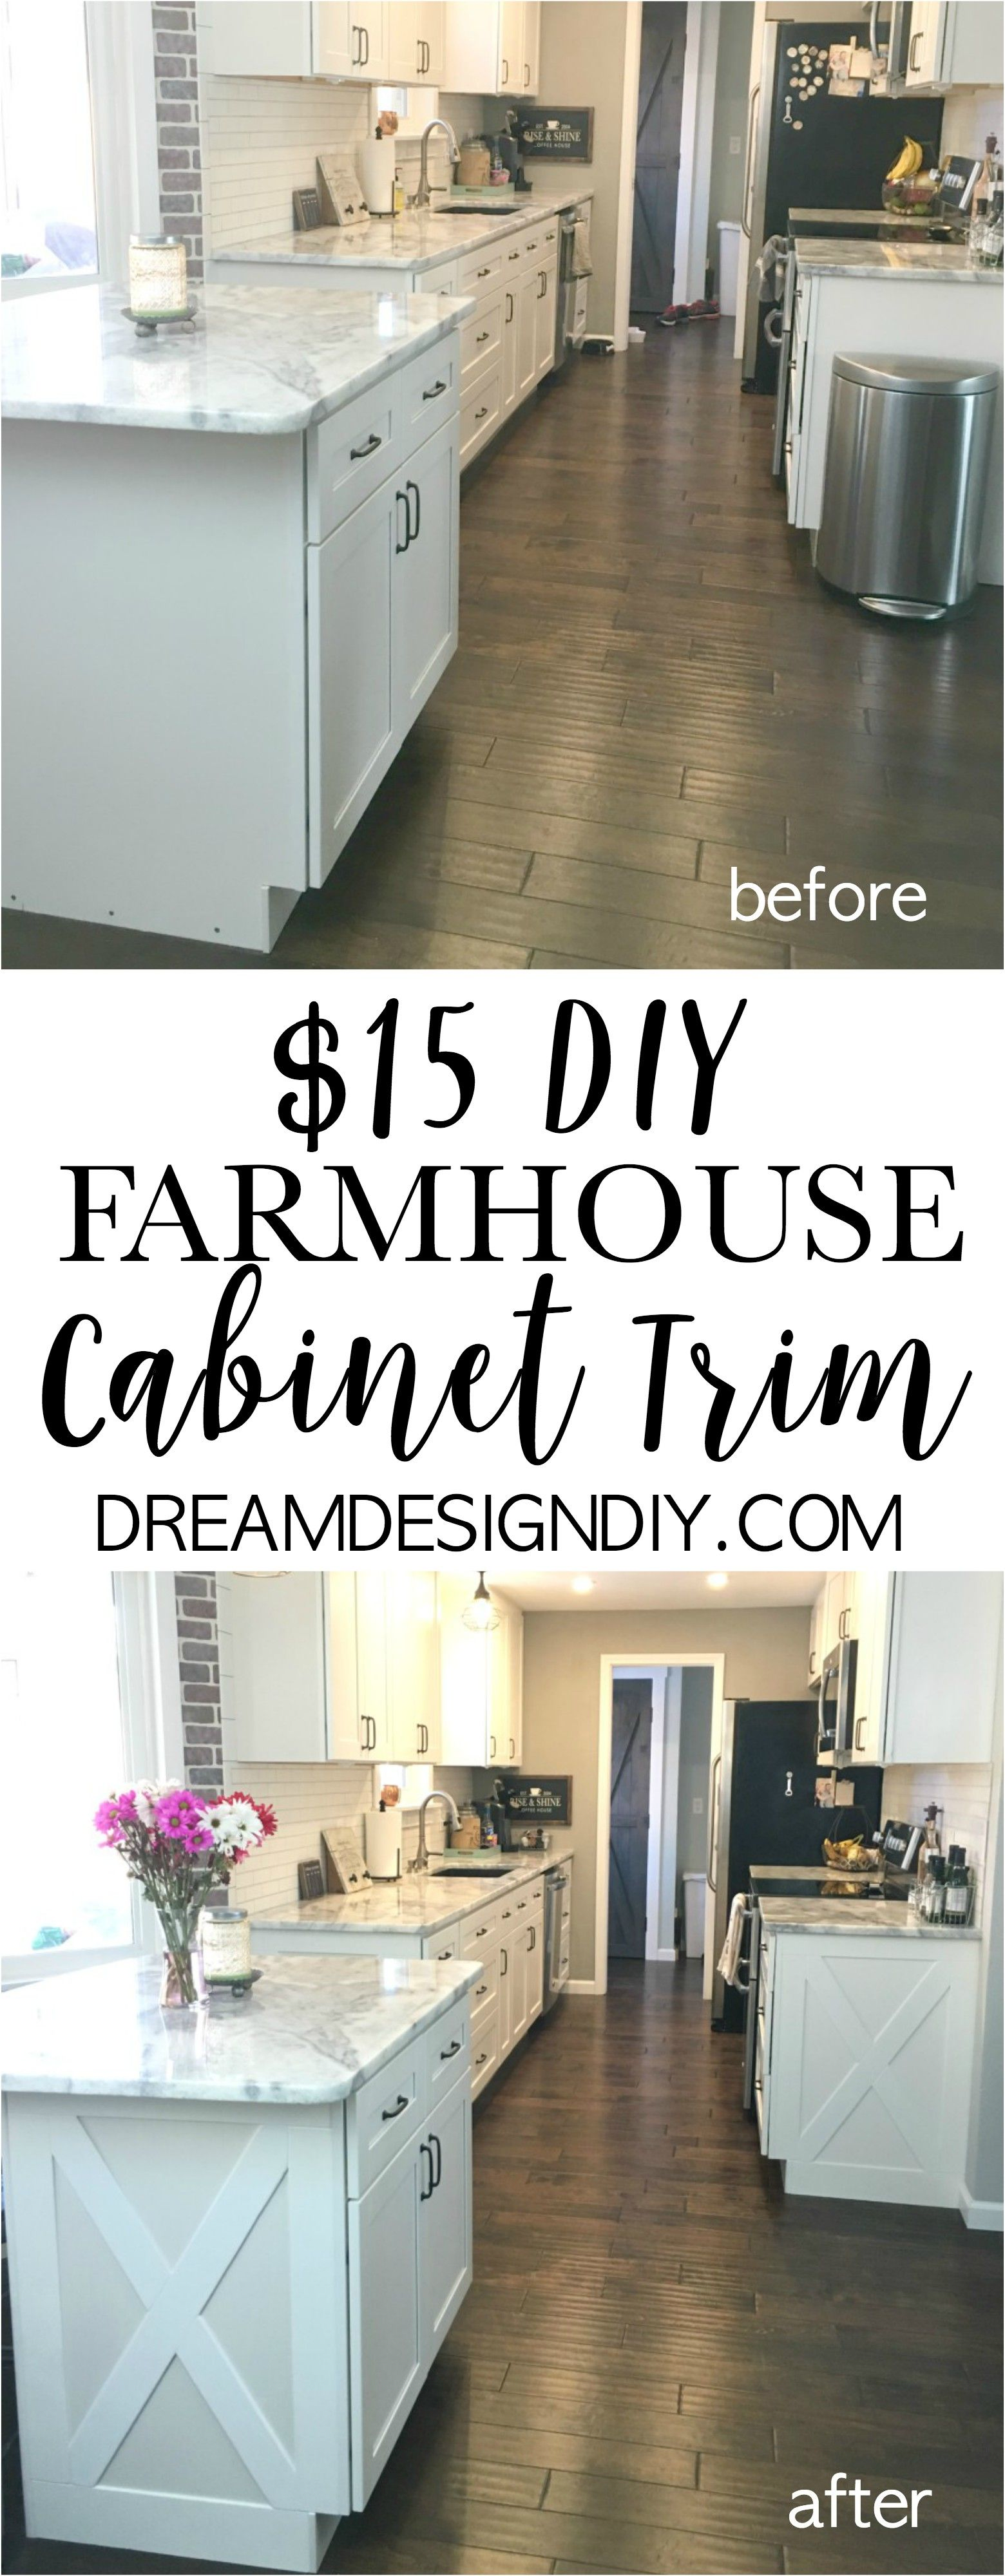 Adding character to your kitchen - Farmhouse Cabinet Trim ...